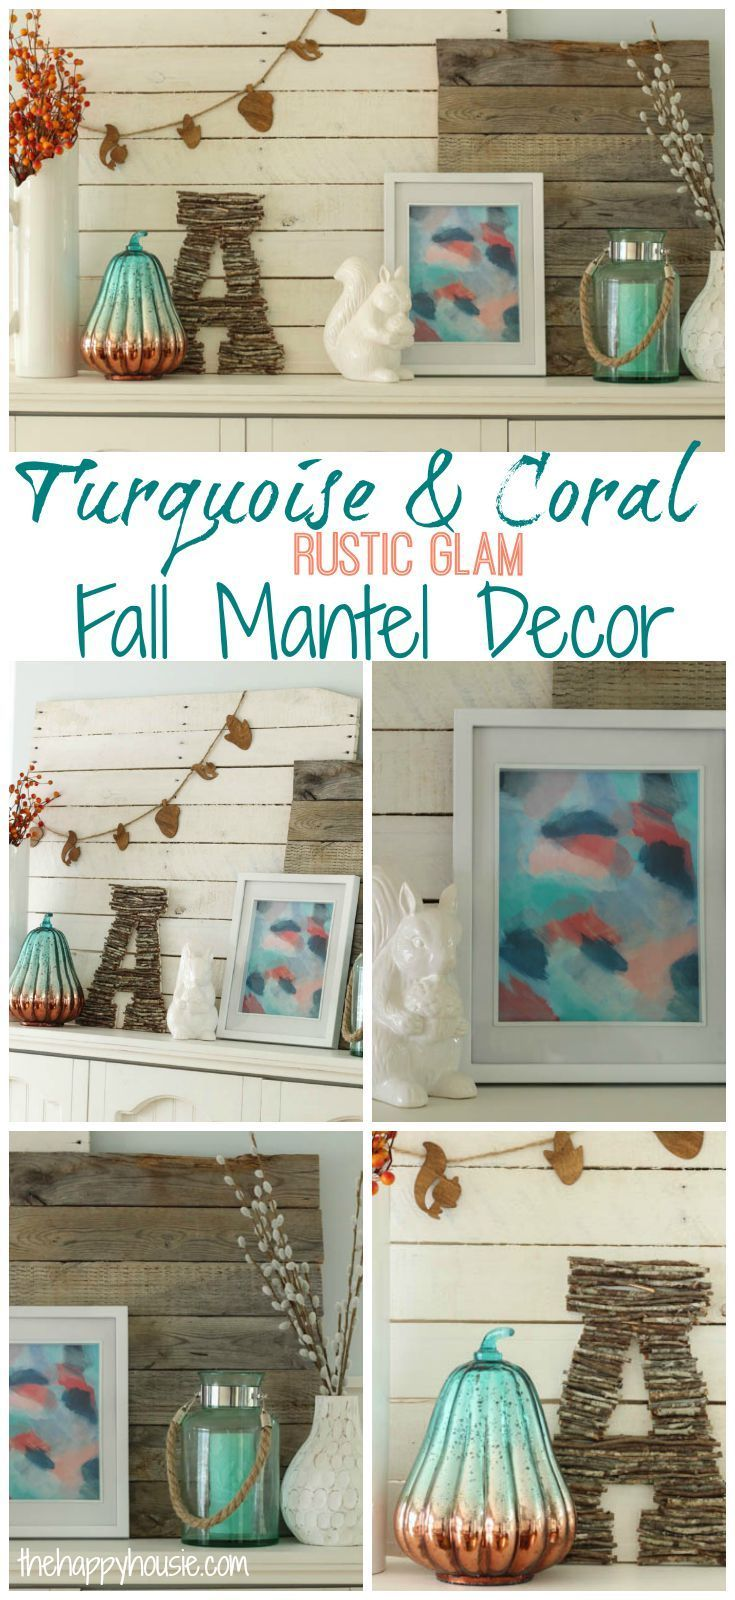 Turquoise & Coral Rustic Glam Fall Mantel Decor at thehappyhousie.com